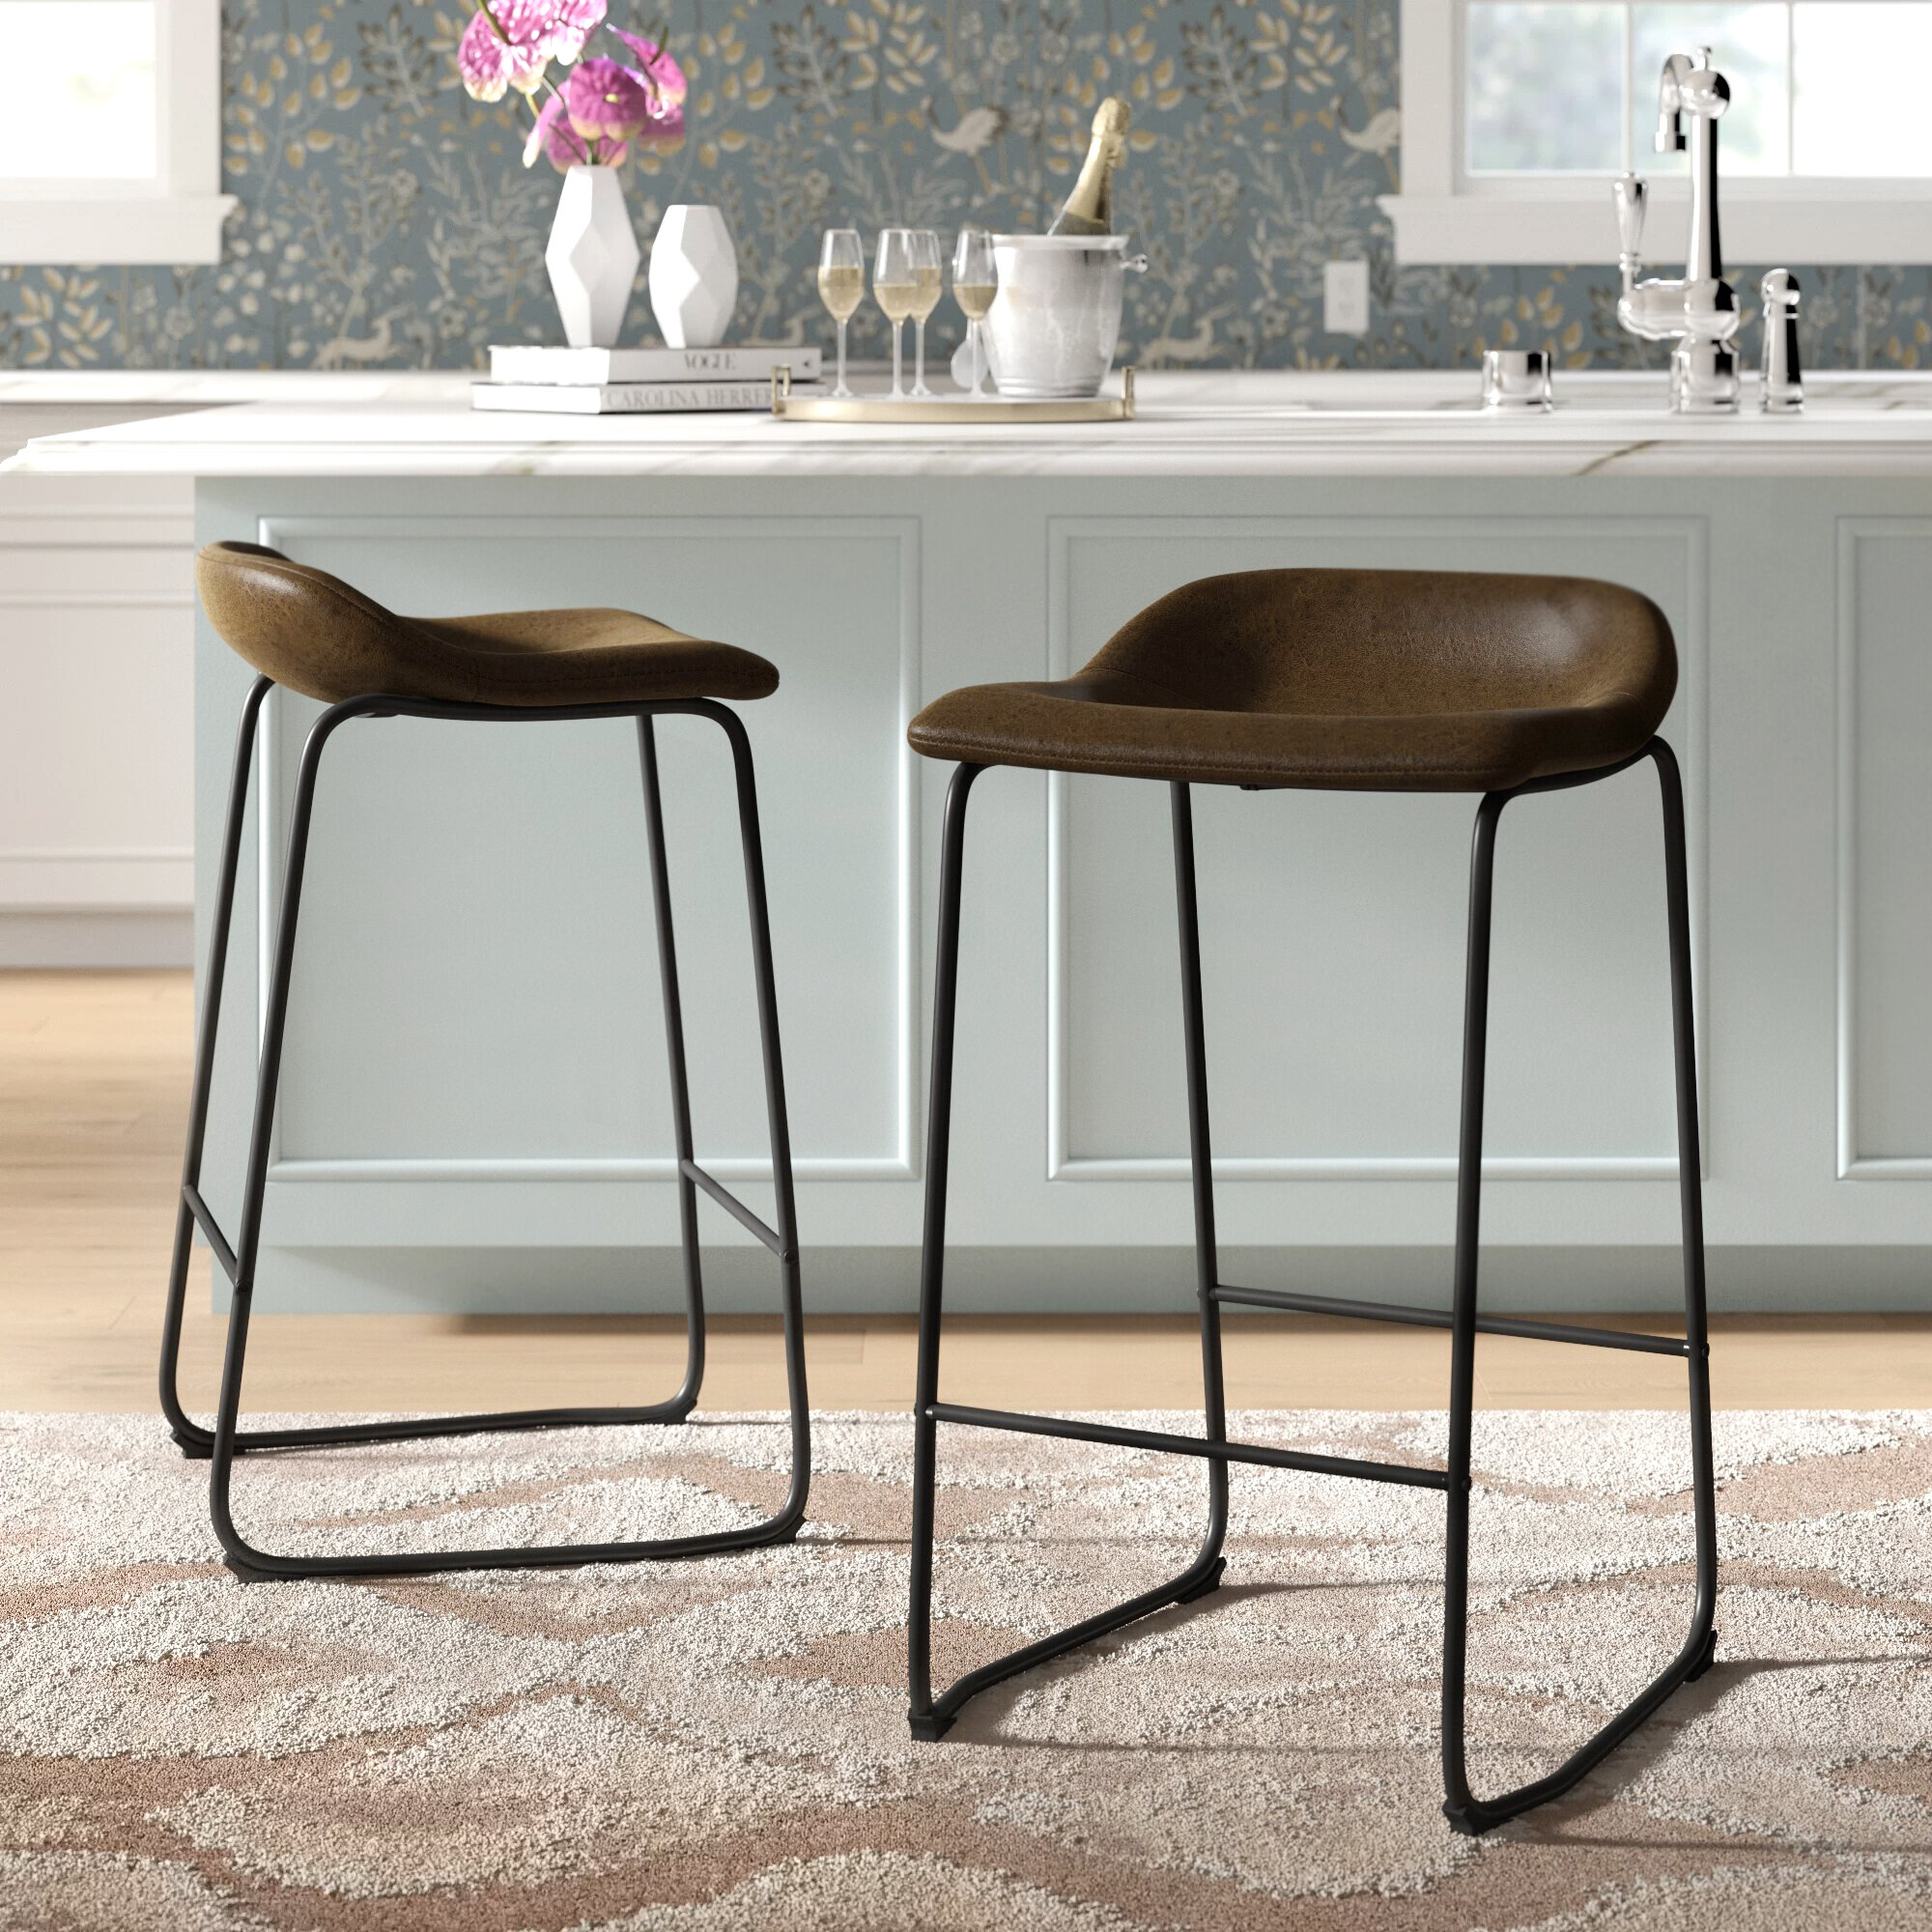 Image of: Modern Contemporary Bar Stools Counter Stools You Ll Love In 2020 Wayfair